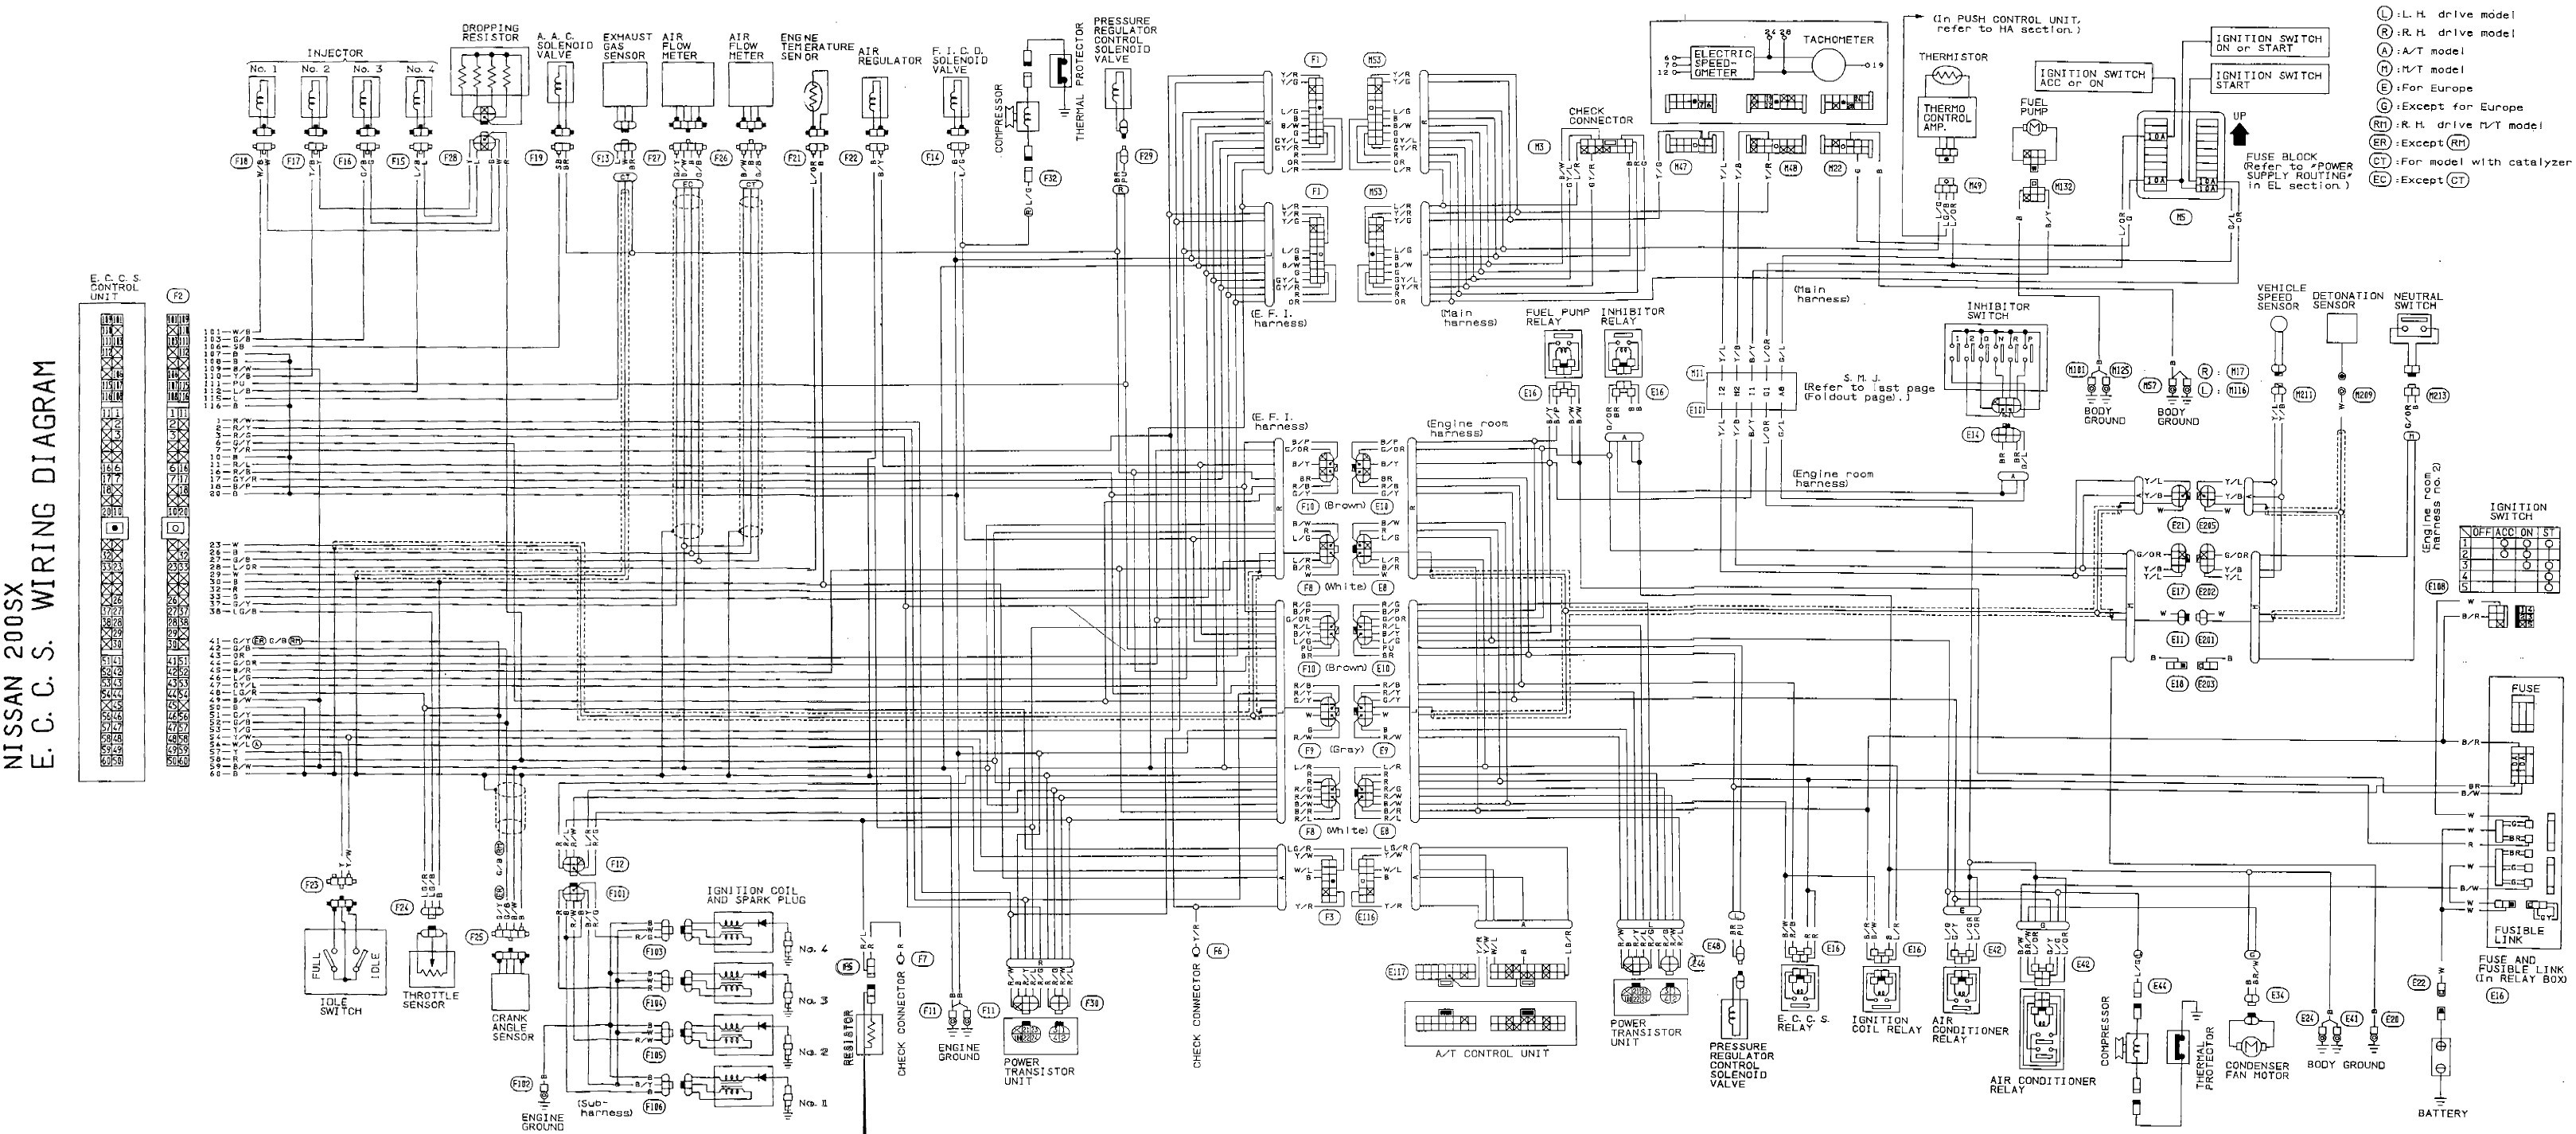 nissan 300zx fuse box diagram on 300zx radio wiring diagram wire rh casiaroc co 1984 nissan 300zx wiring diagram 1990 nissan 300zx wiring diagram